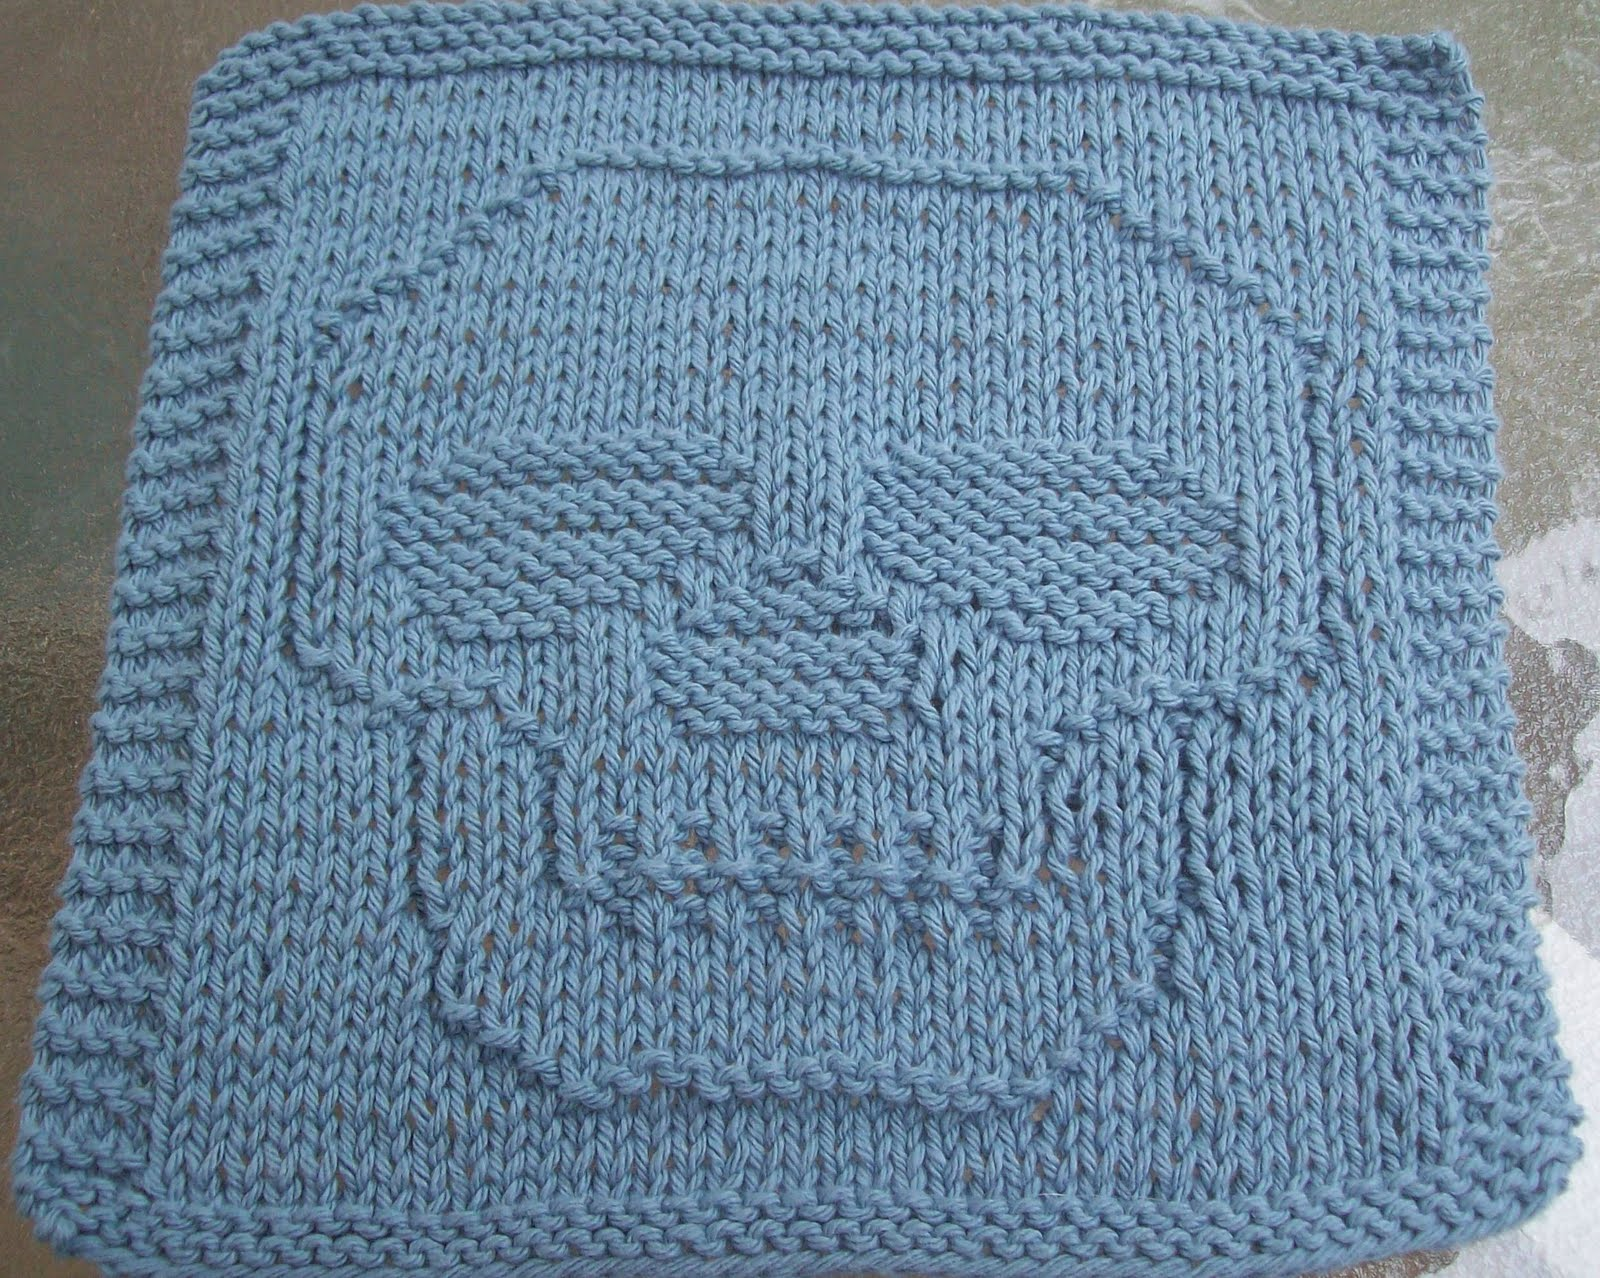 DigKnitty Designs: Just a Skull Knit Dishcloth Pattern